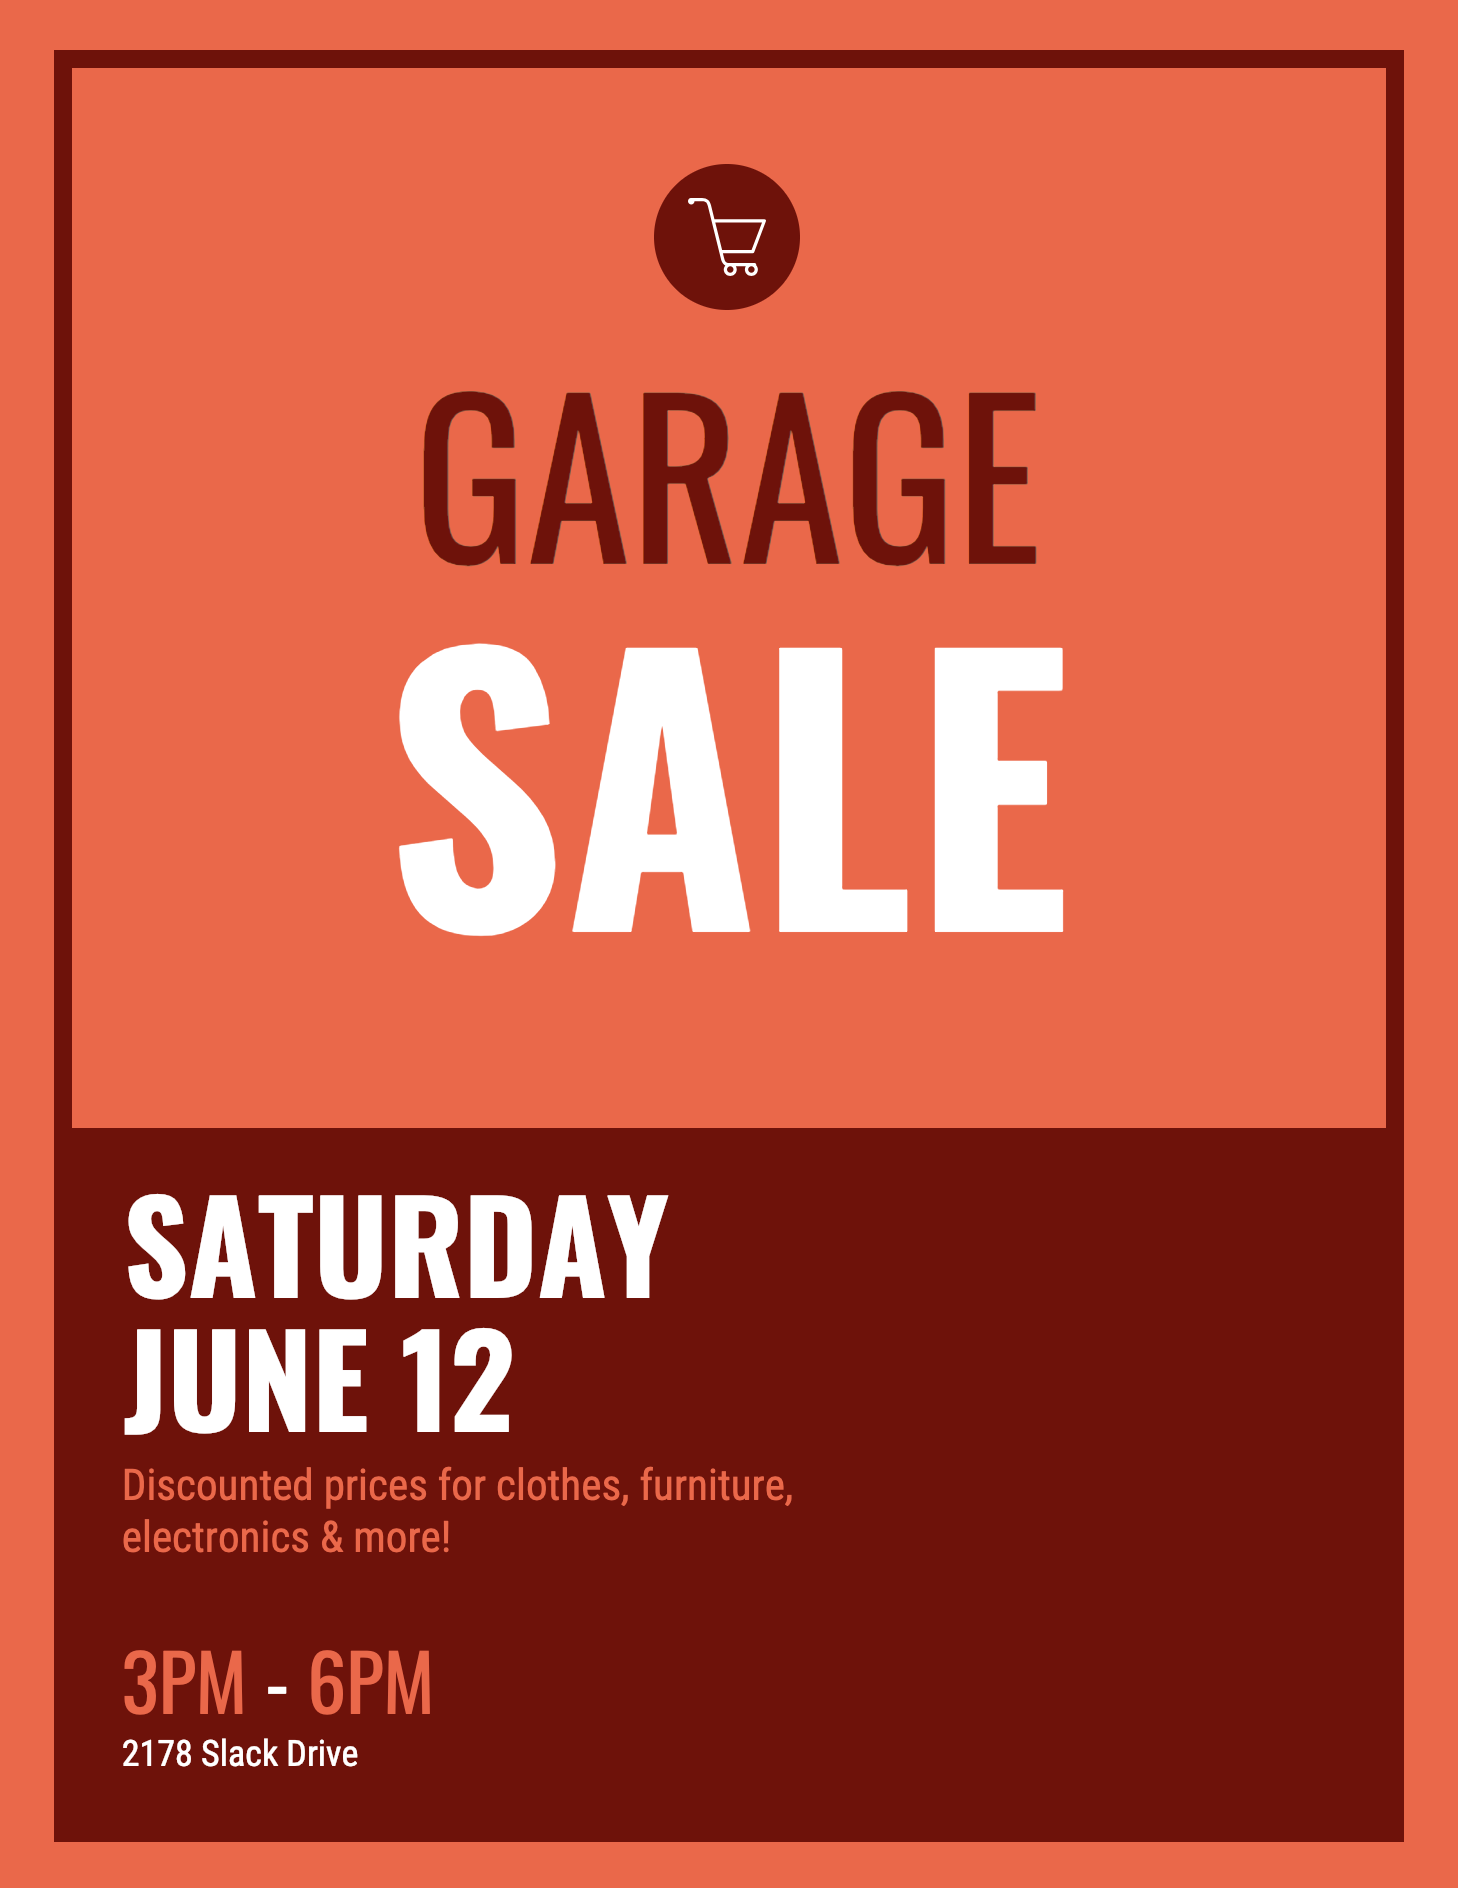 Garage Sale Event Poster Event Poster Template Event Poster Poster Template